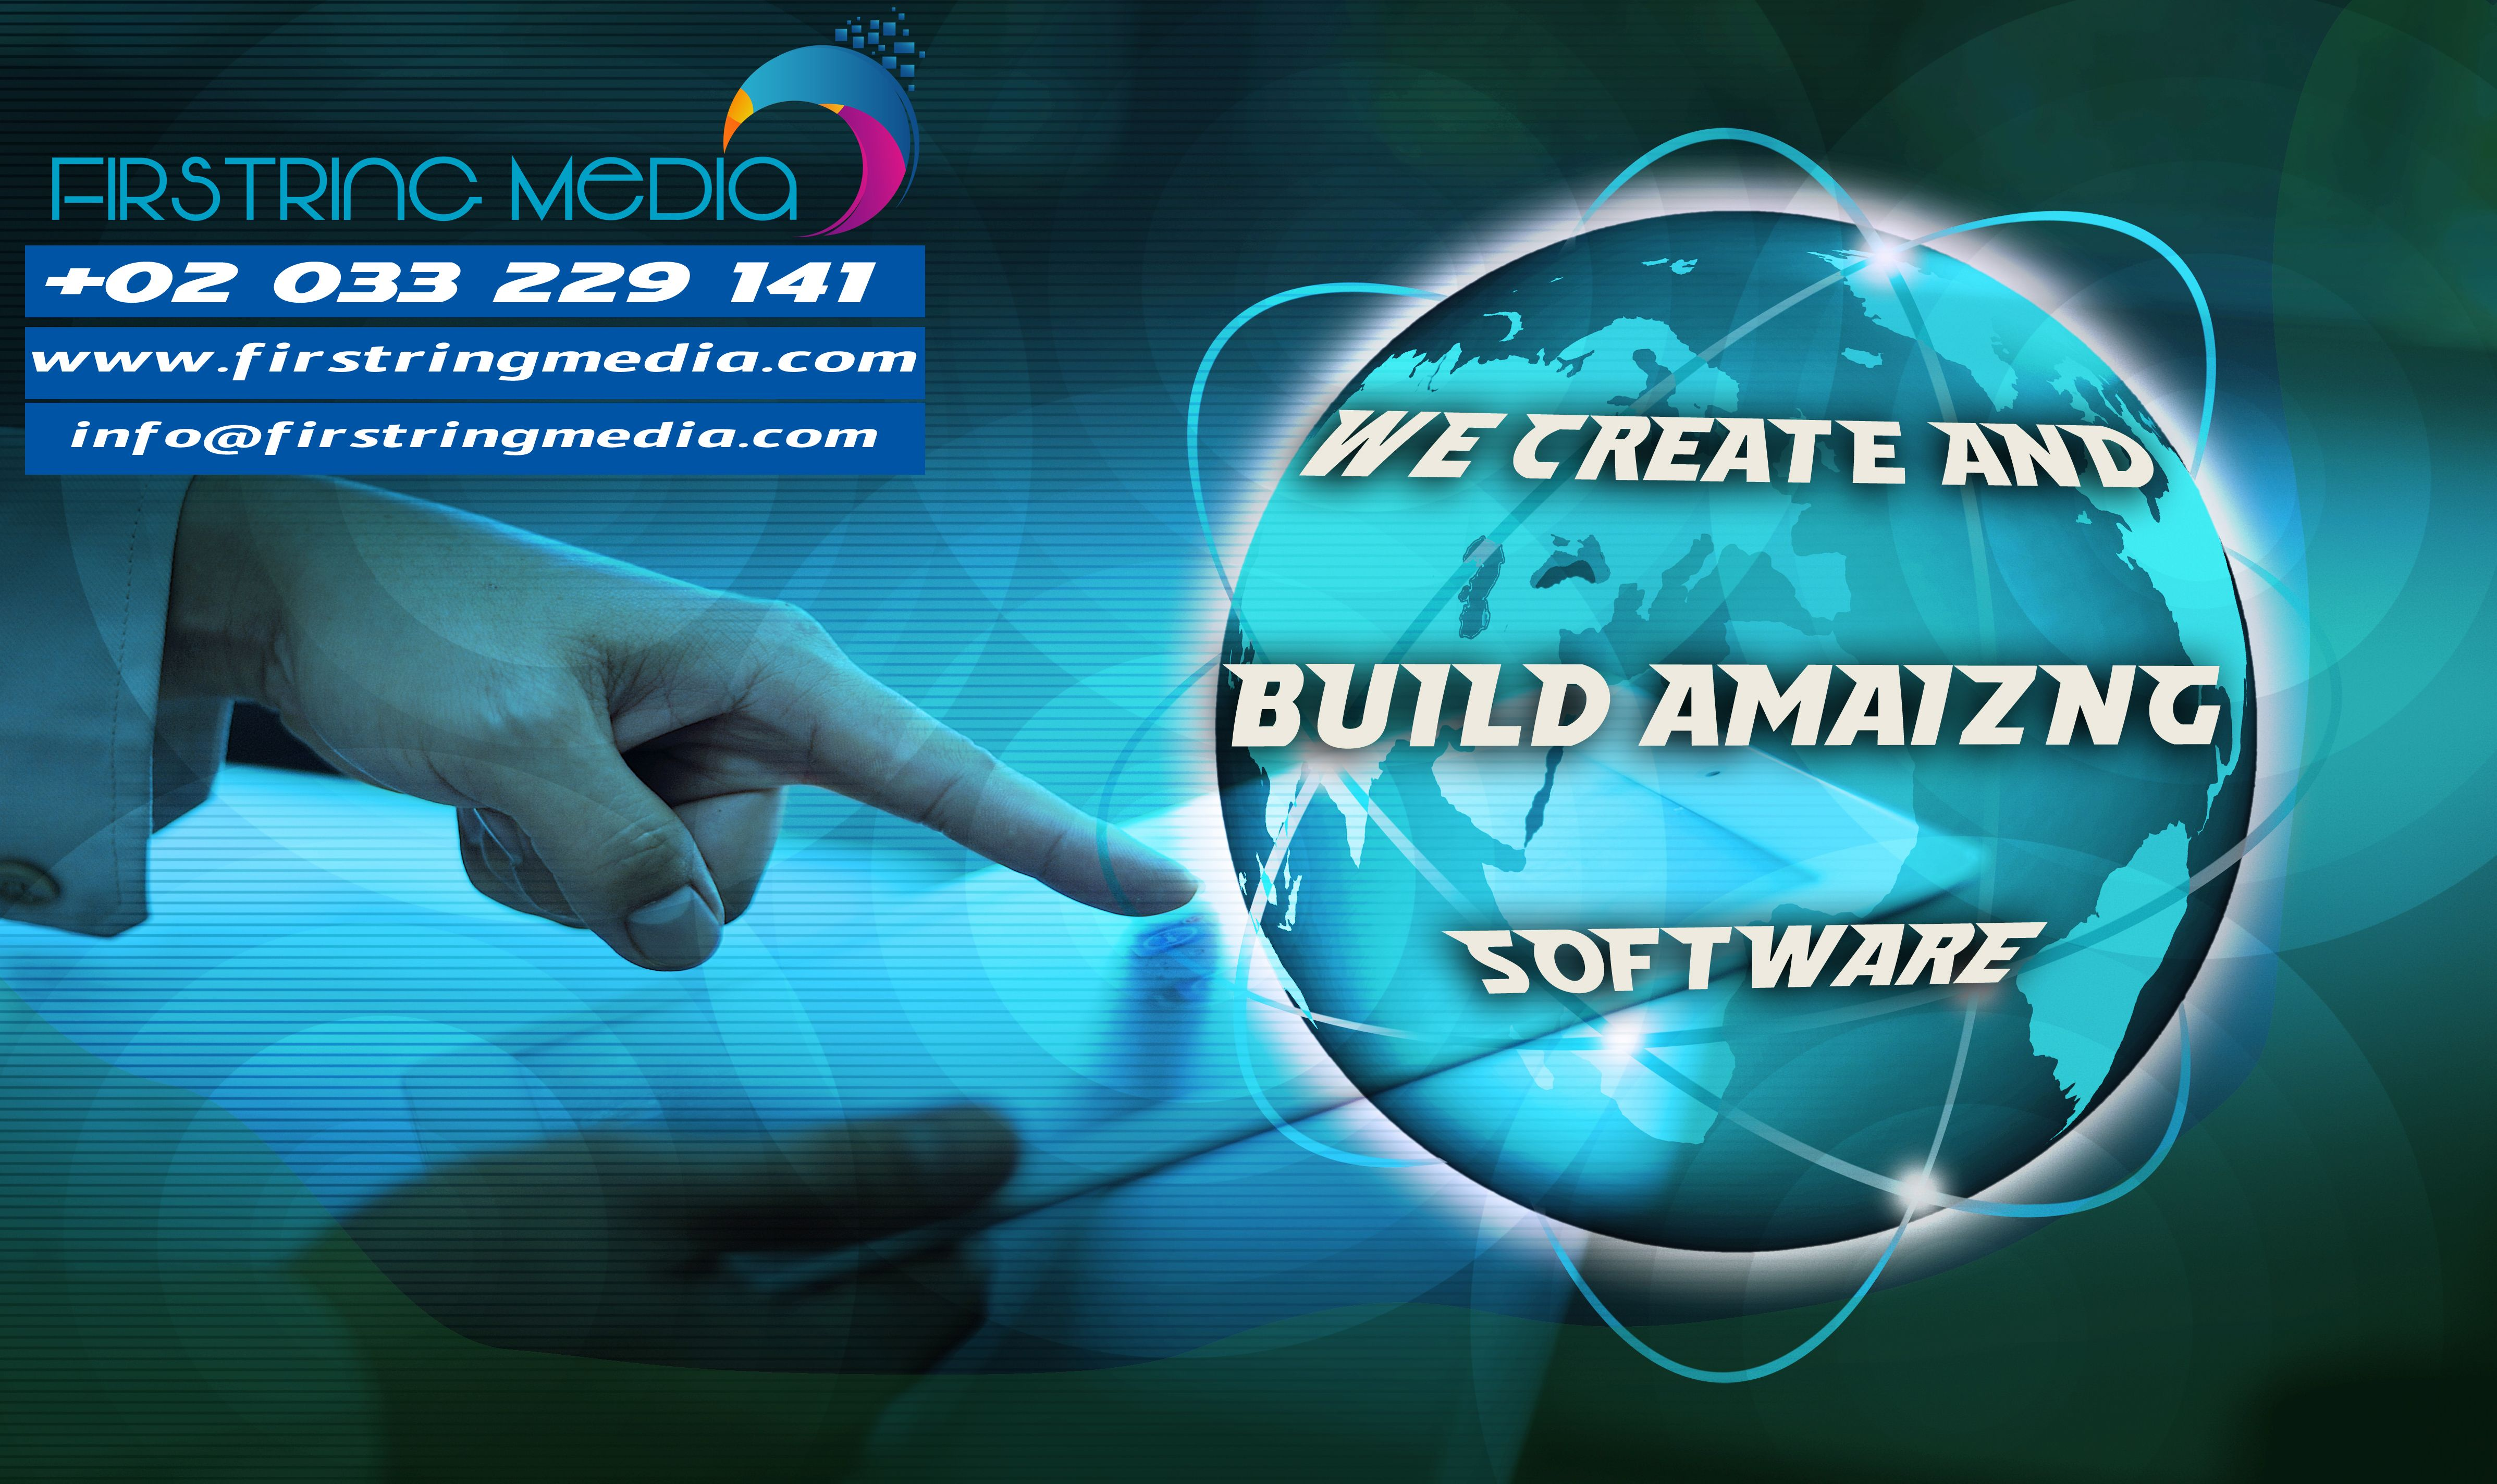 we create and build amazing software contact +02 033 229